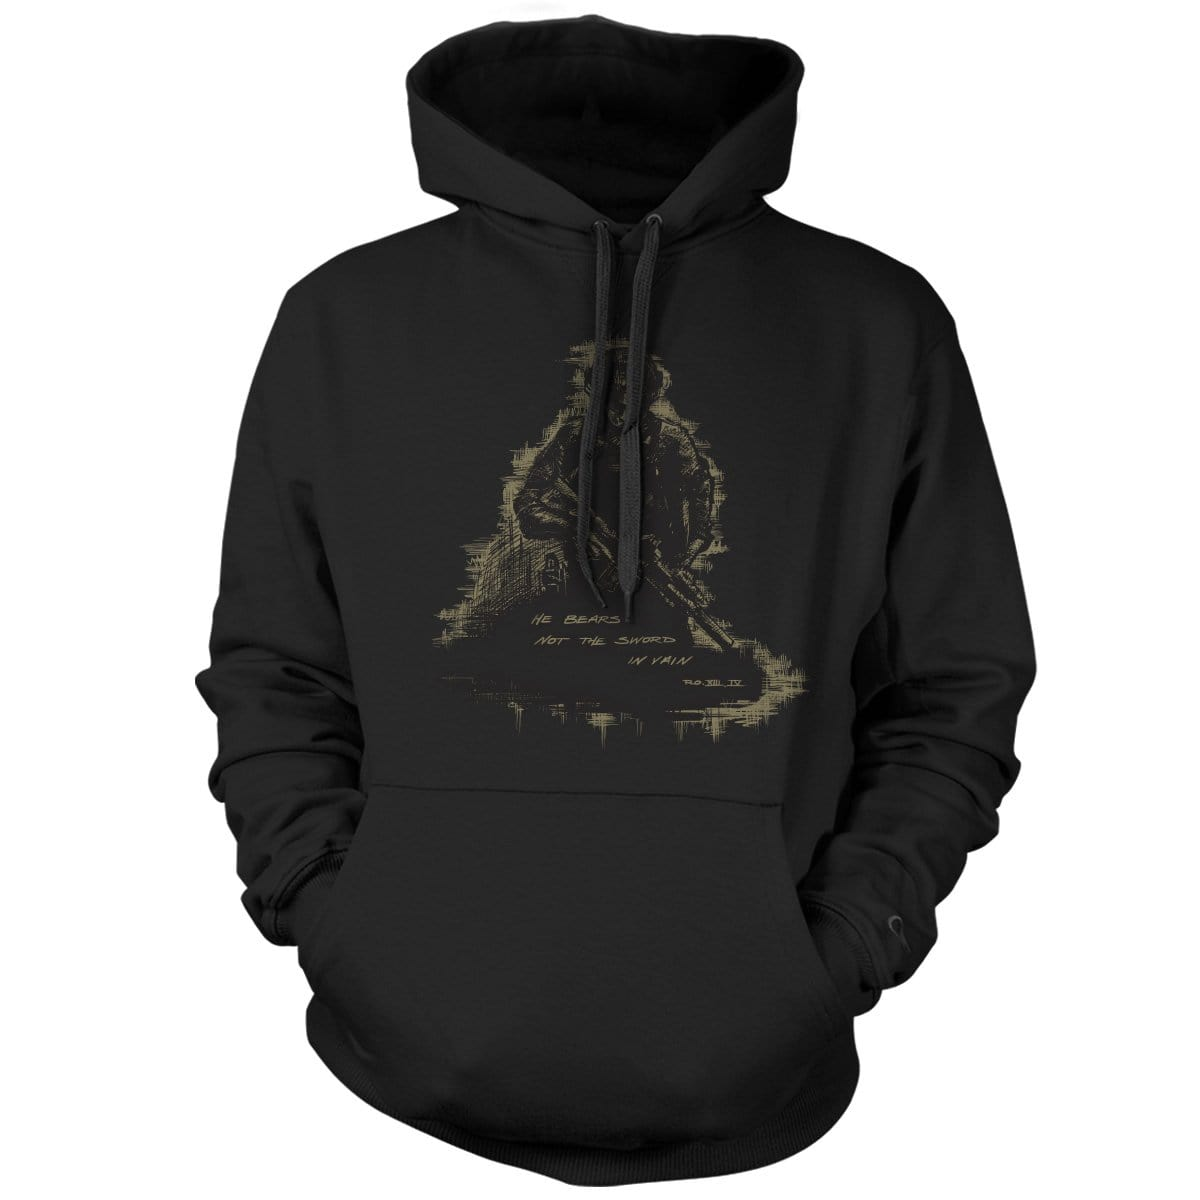 Romans 13:4 Hoodie - Black - Hoodies - Pipe Hitters Union